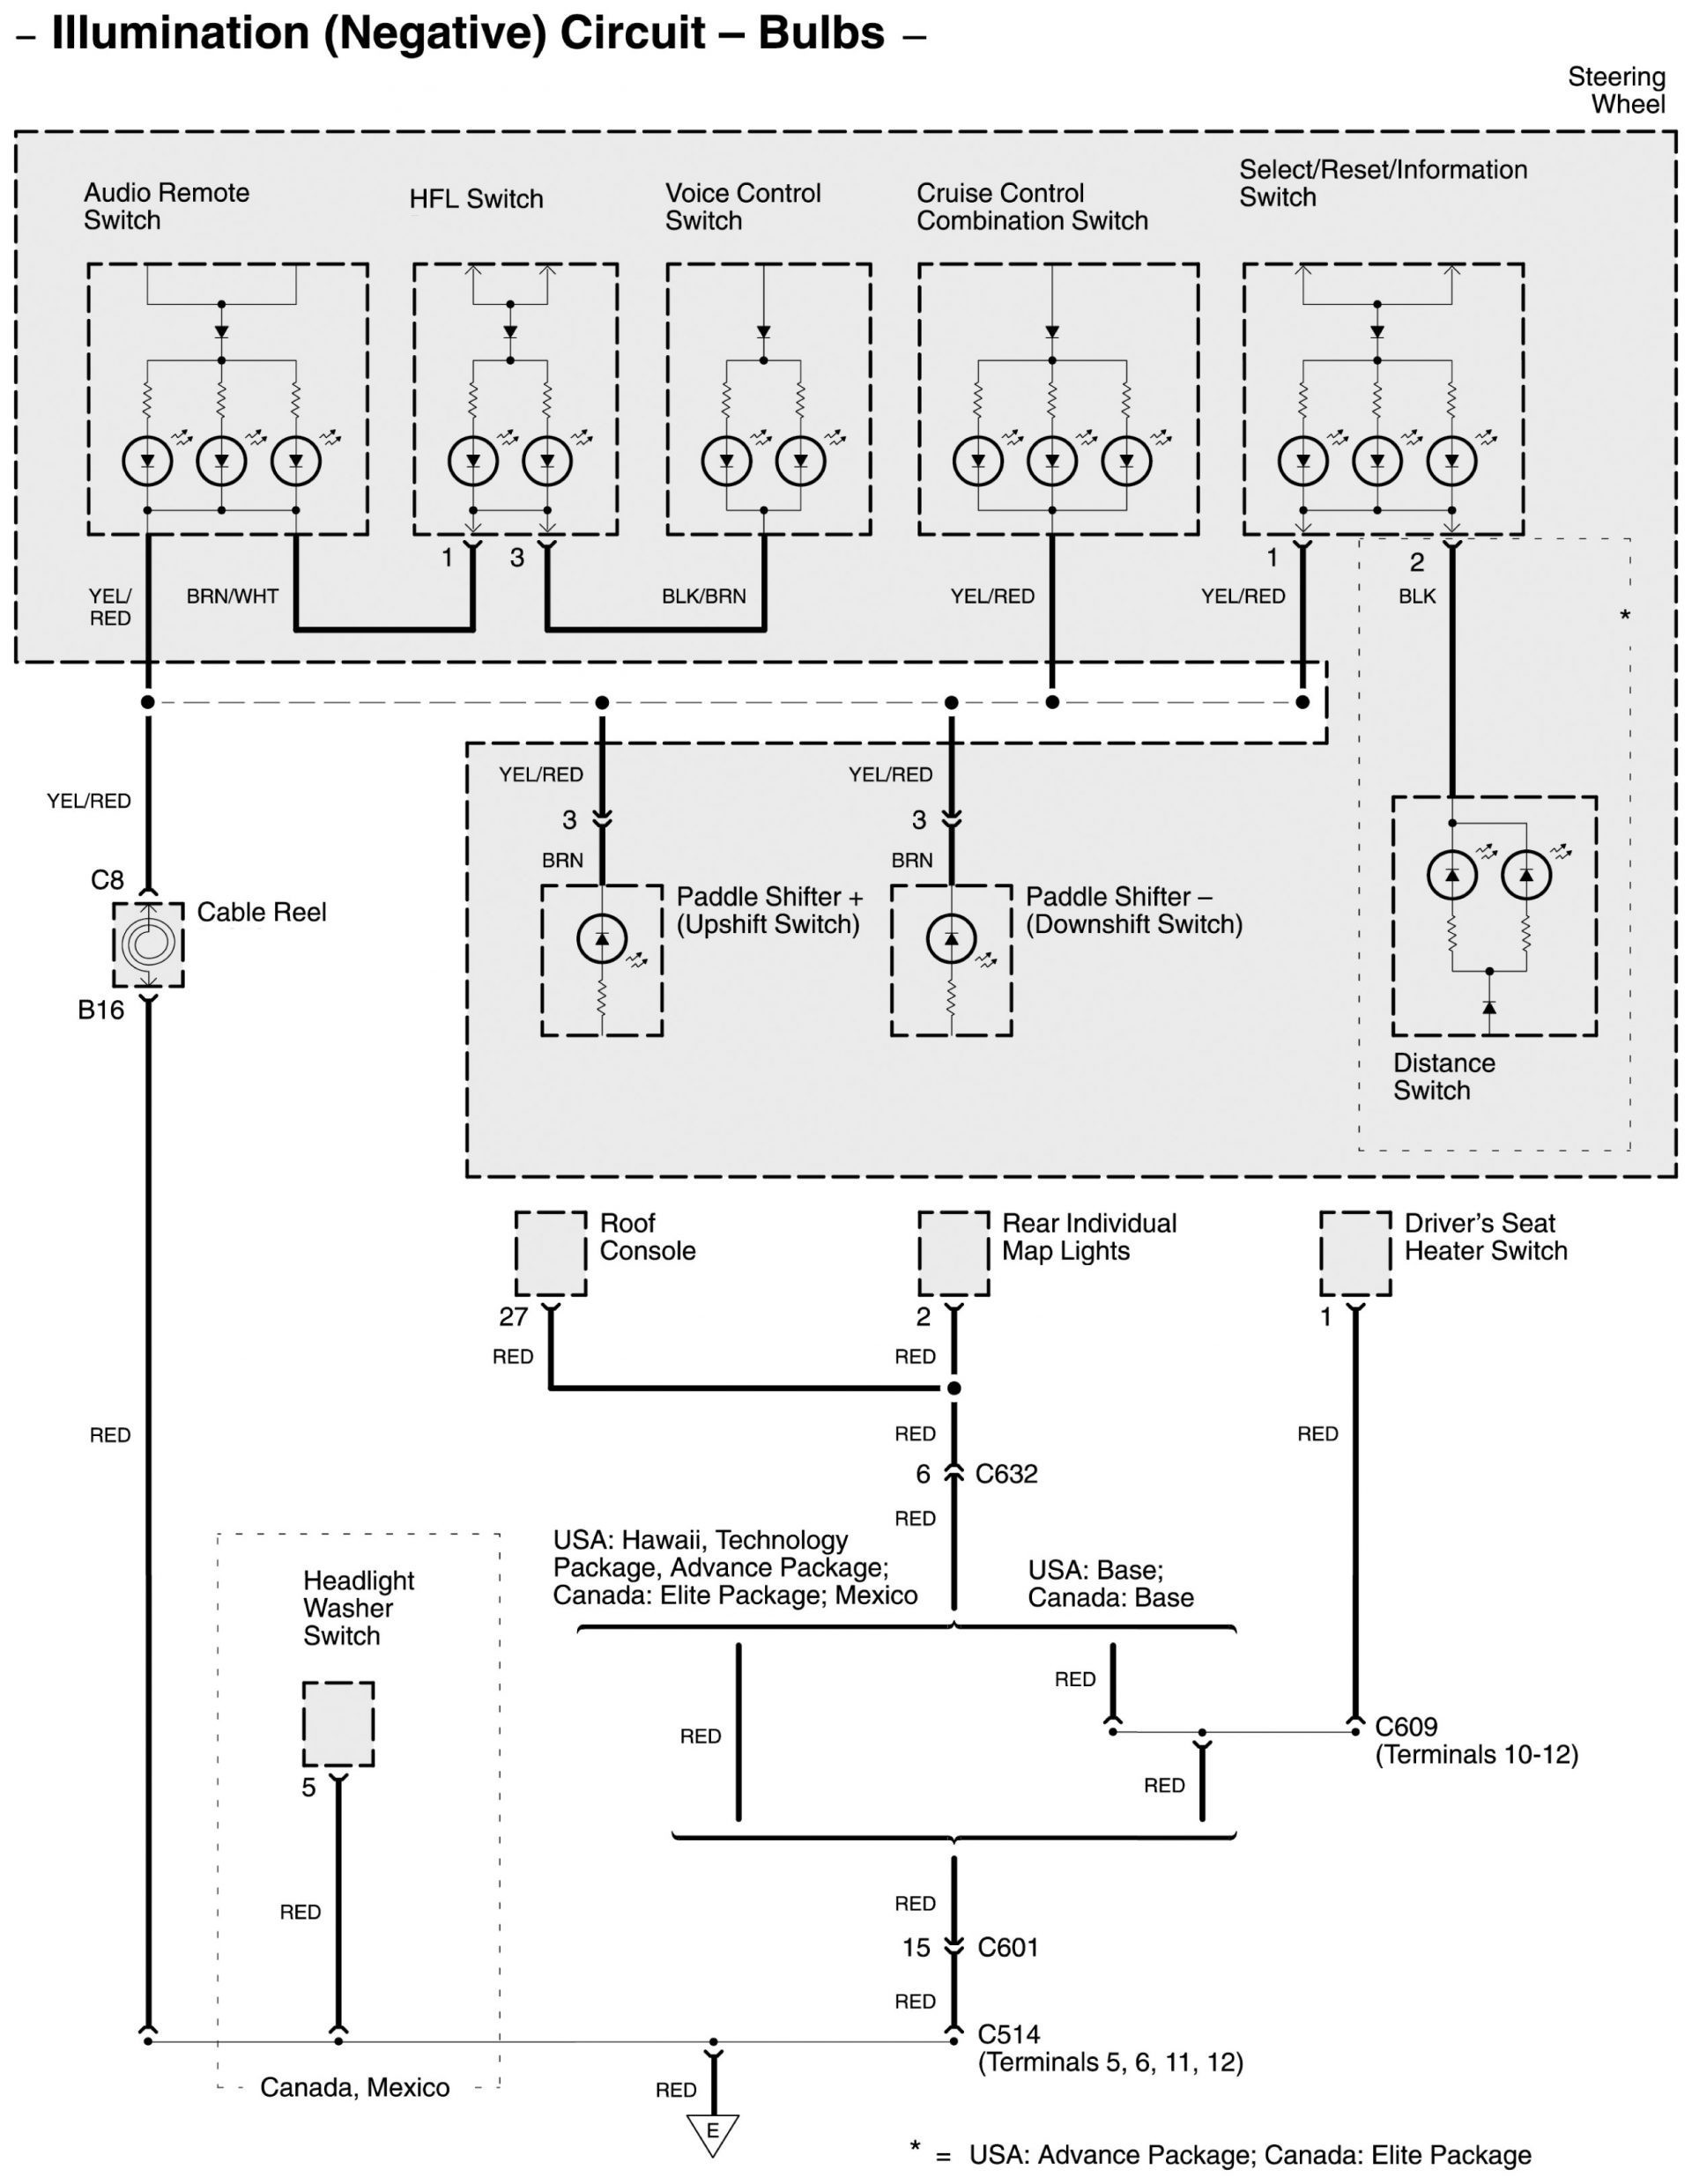 25 landscape lighting low voltage dimmer wiring diagram pictures Wiring a Homeline Service Panel 0 10 volt dimming wiring diagram